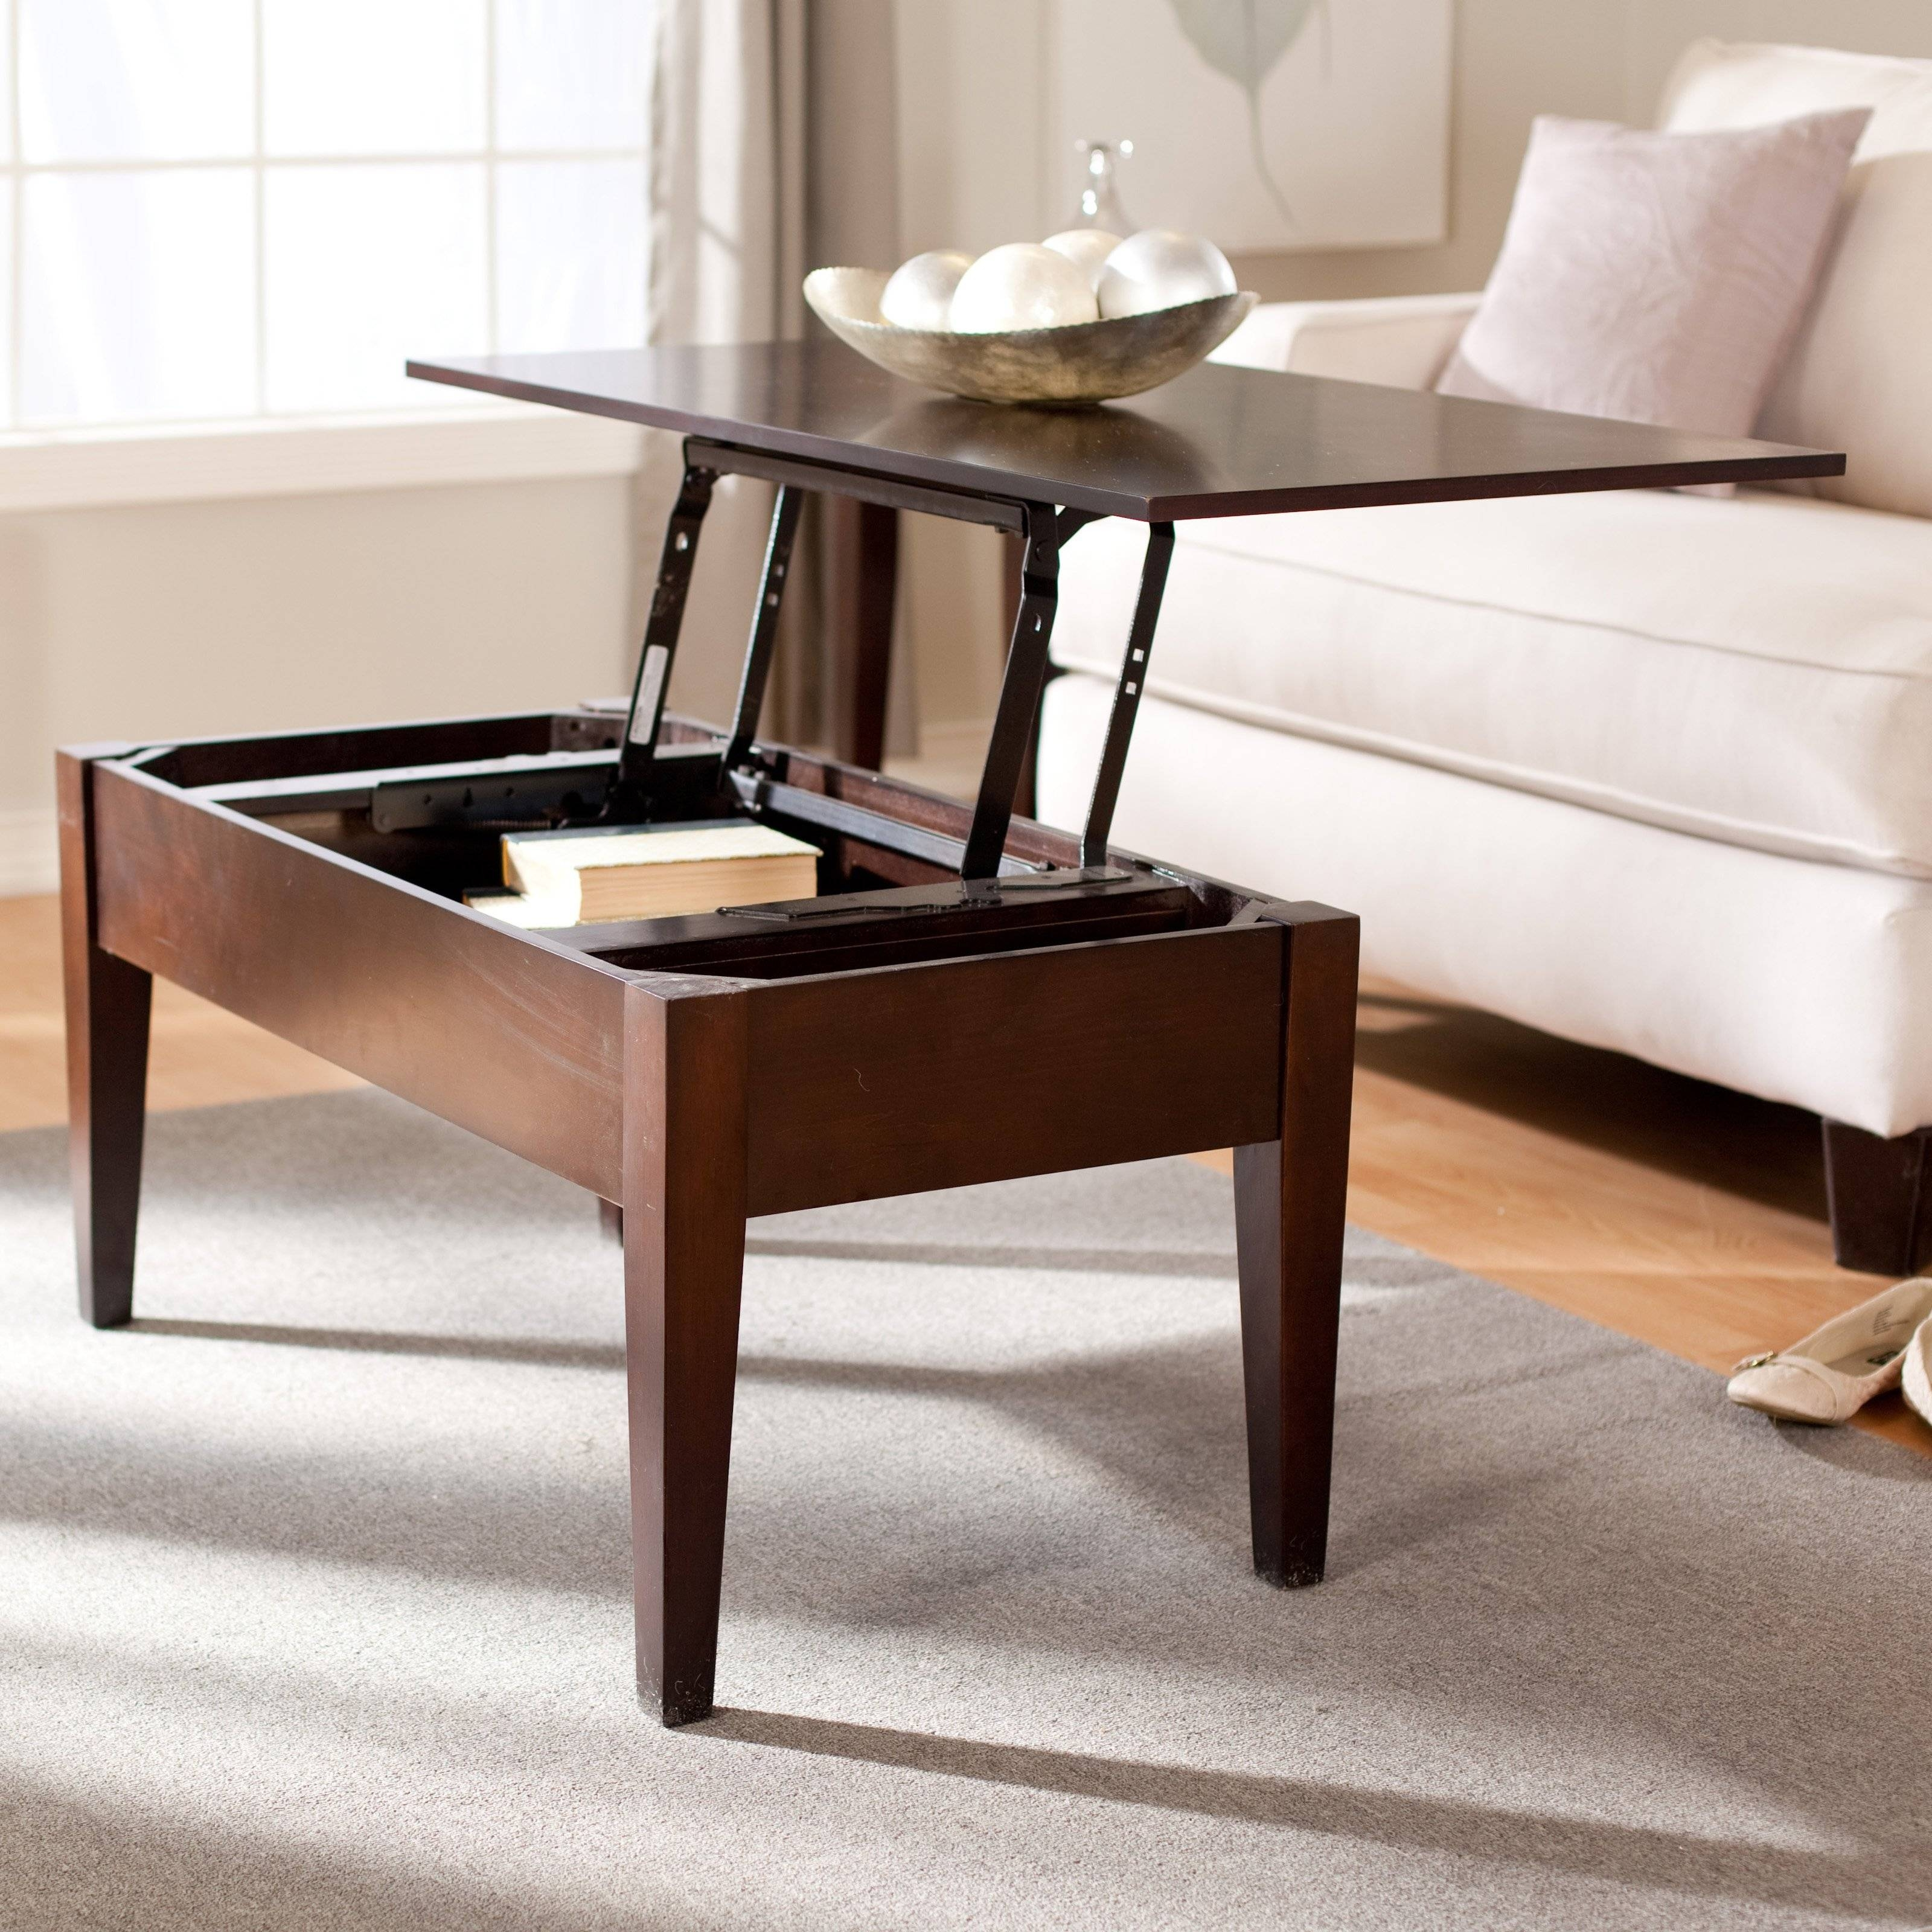 Turner Lift Top Coffee Table - Espresso | Hayneedle with regard to Flip Top Coffee Tables (Image 28 of 30)